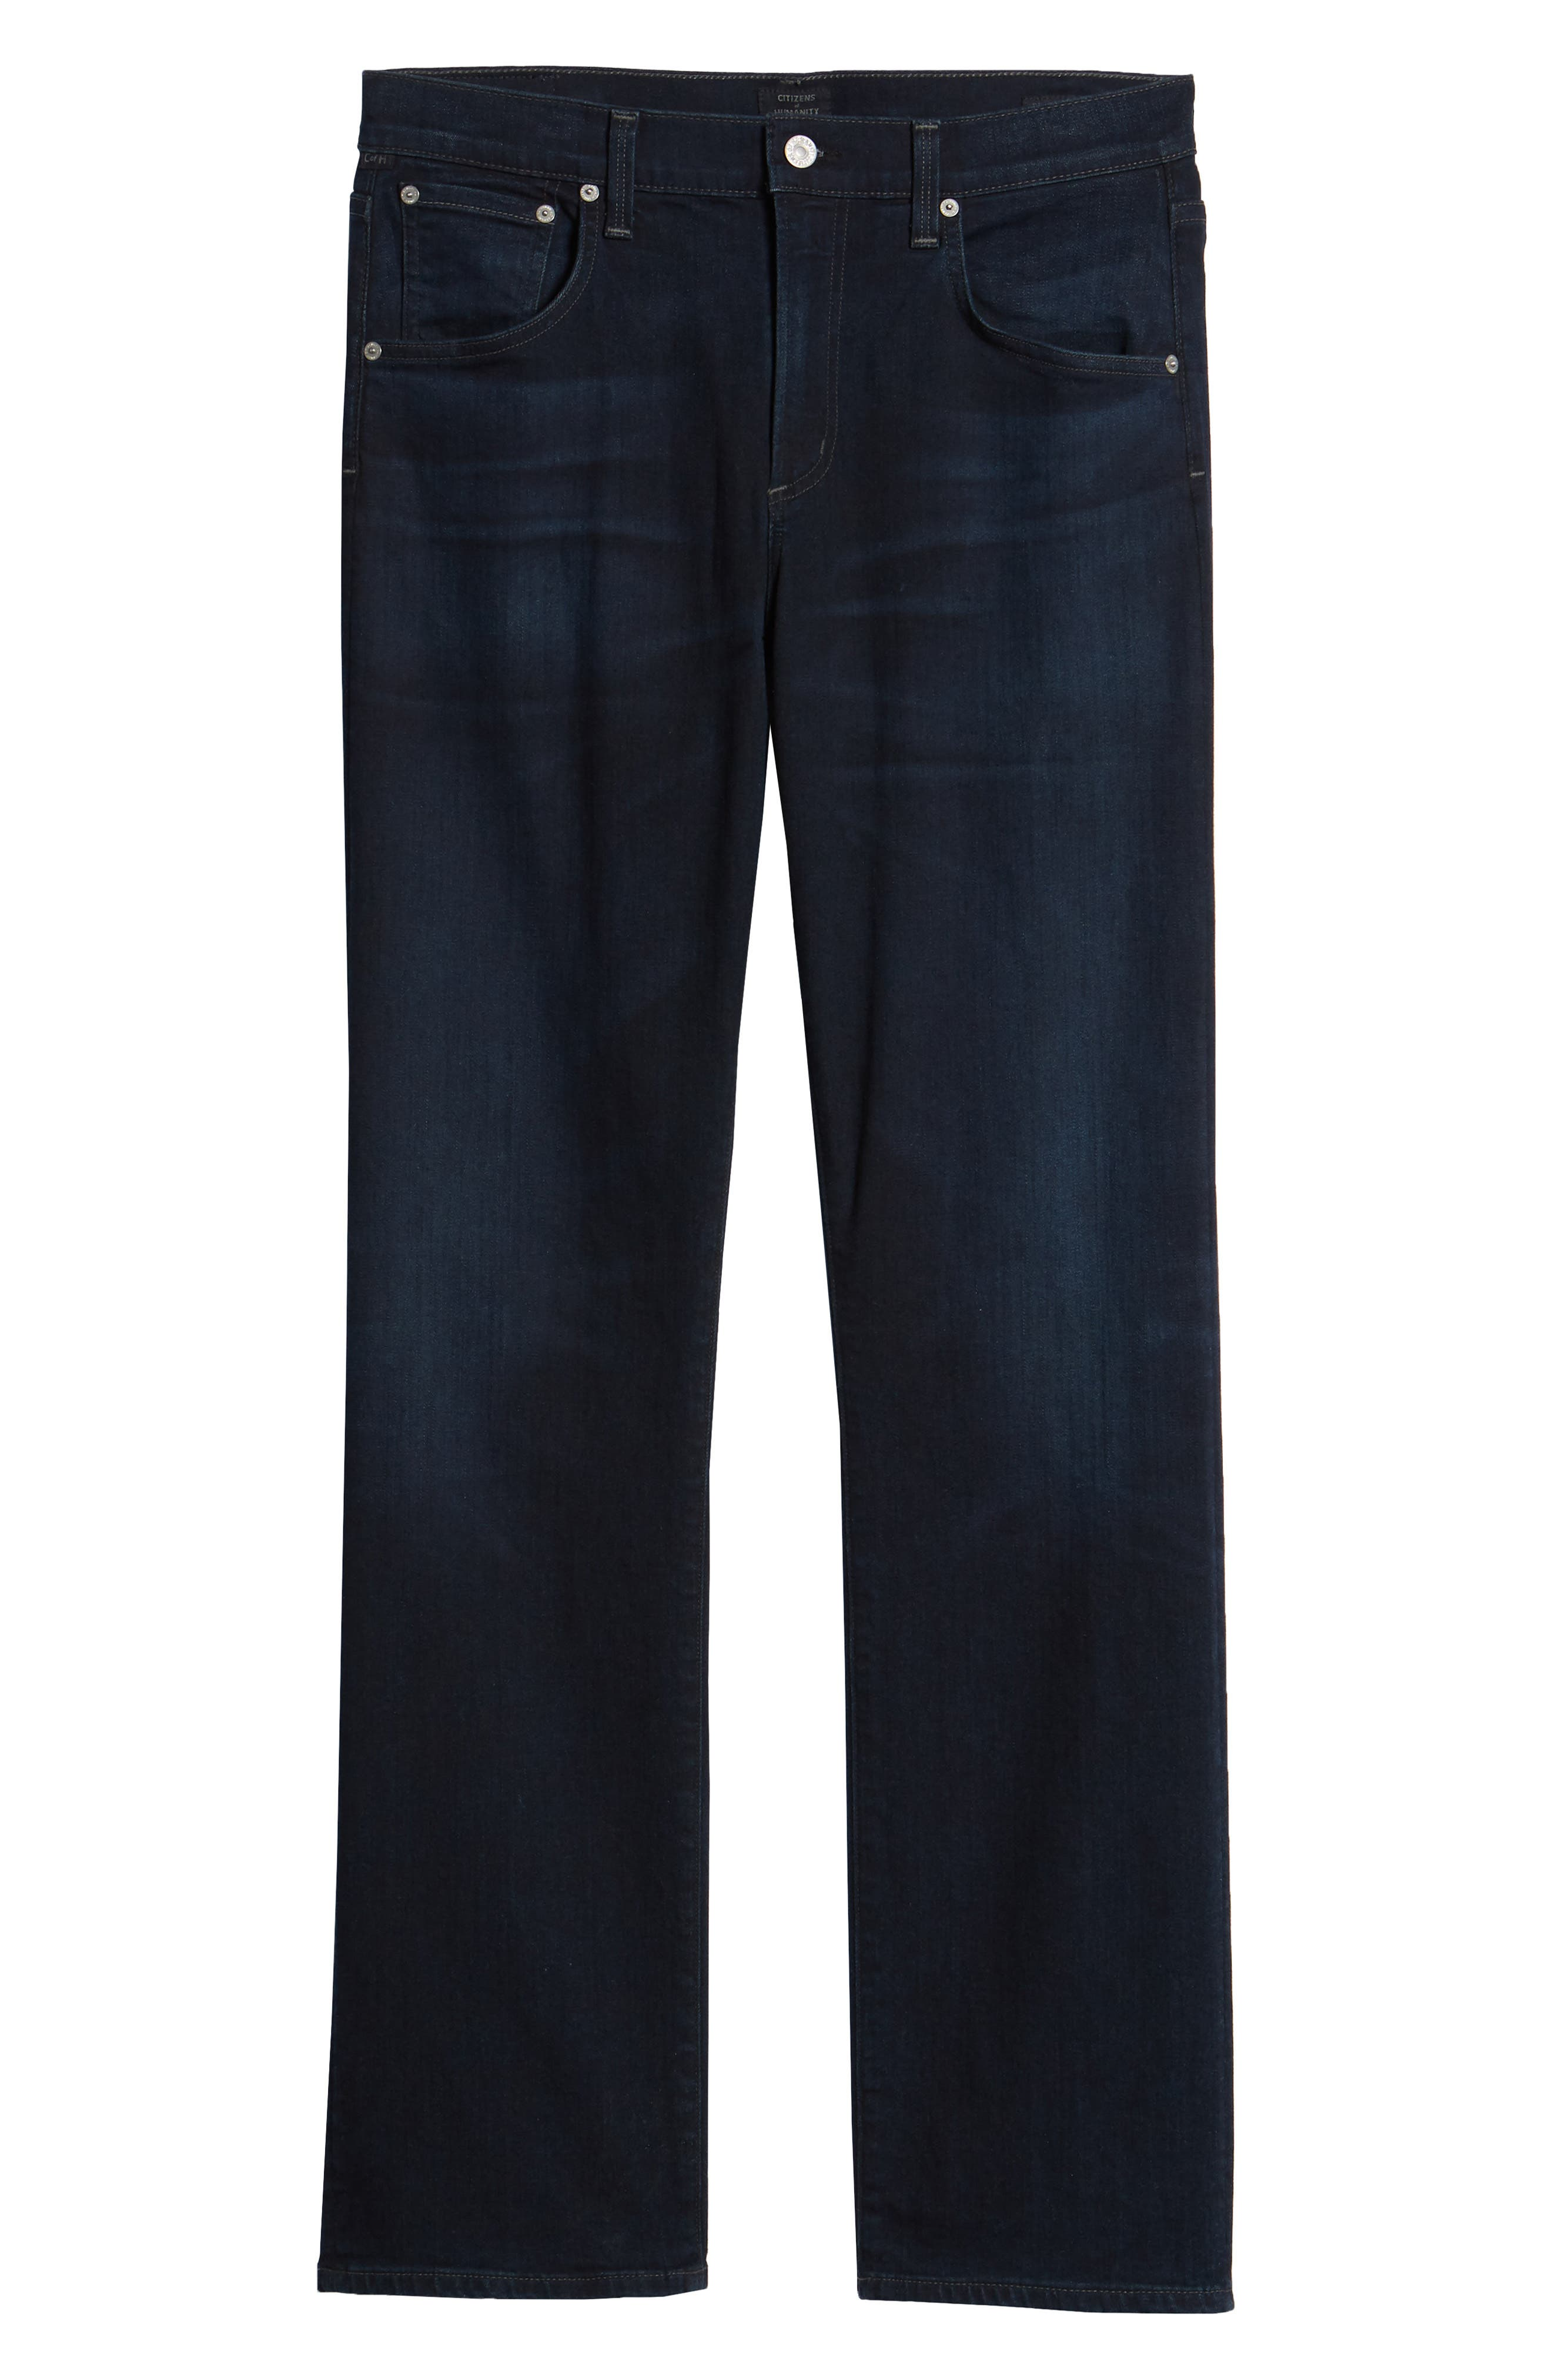 Citzens of Humanity Perfect Relaxed Fit Jeans,                             Alternate thumbnail 6, color,                             Miles